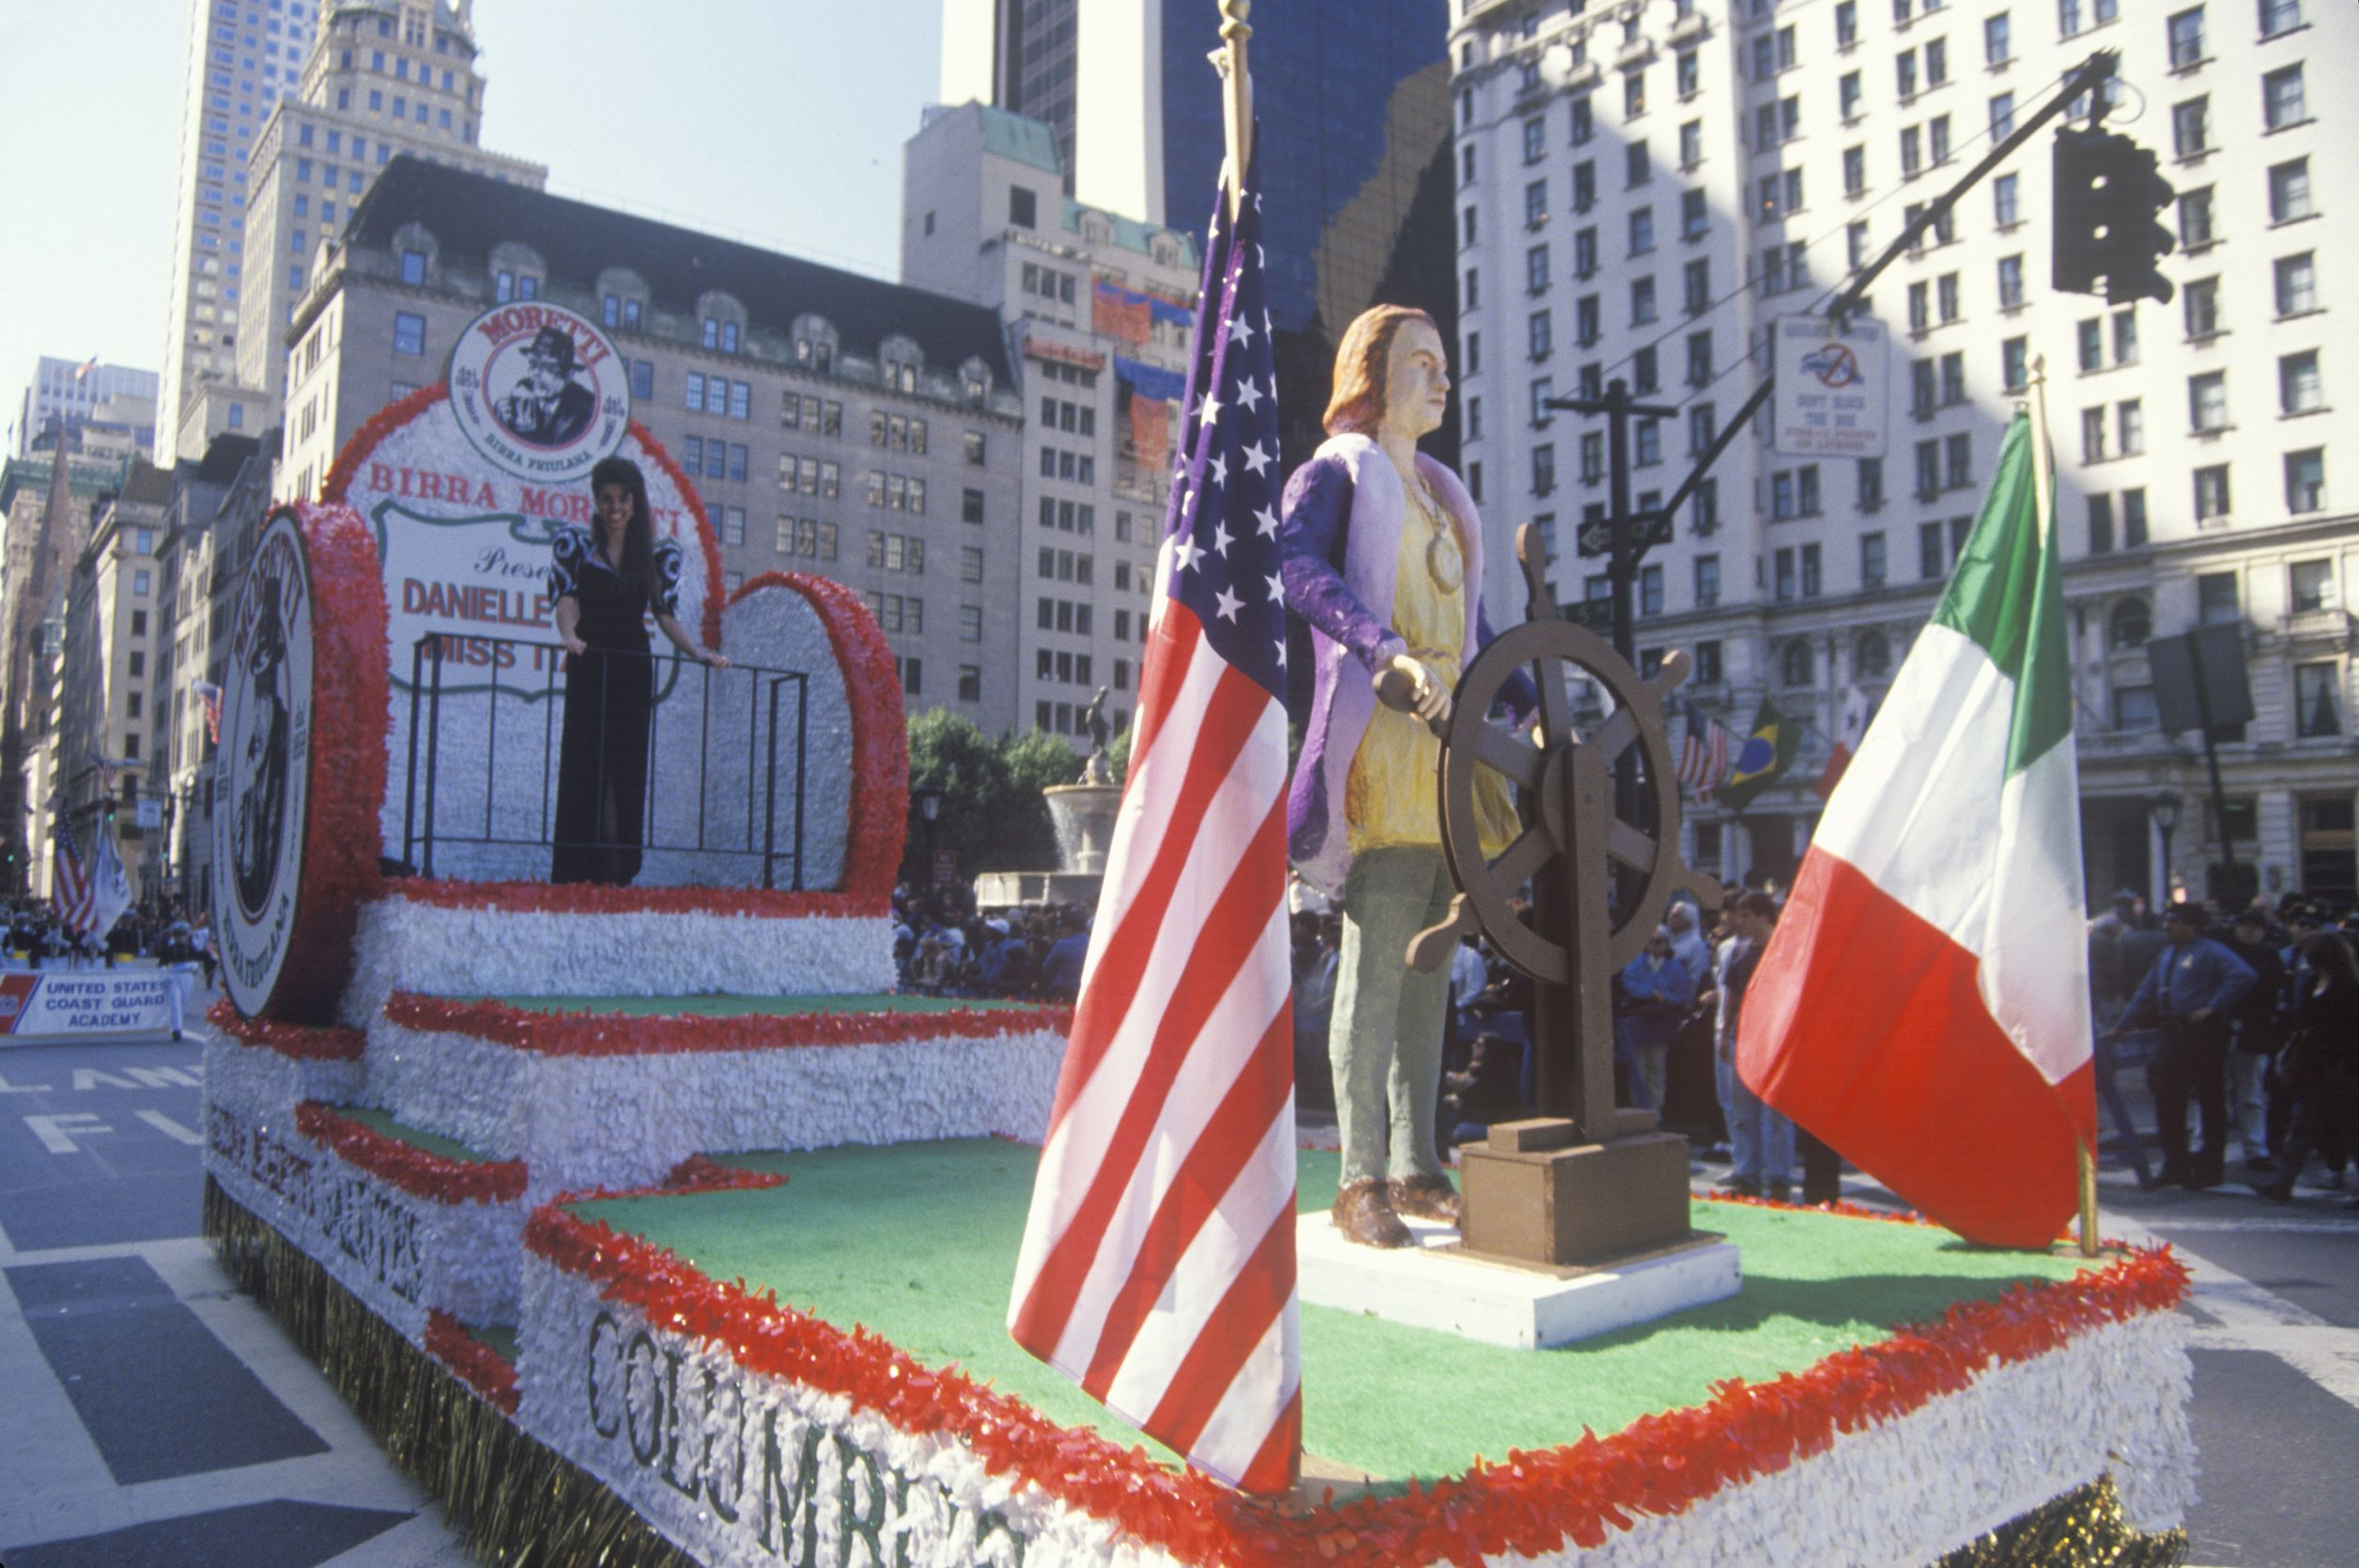 Native American Day and Columbus Day Parade Float, New York City, New York